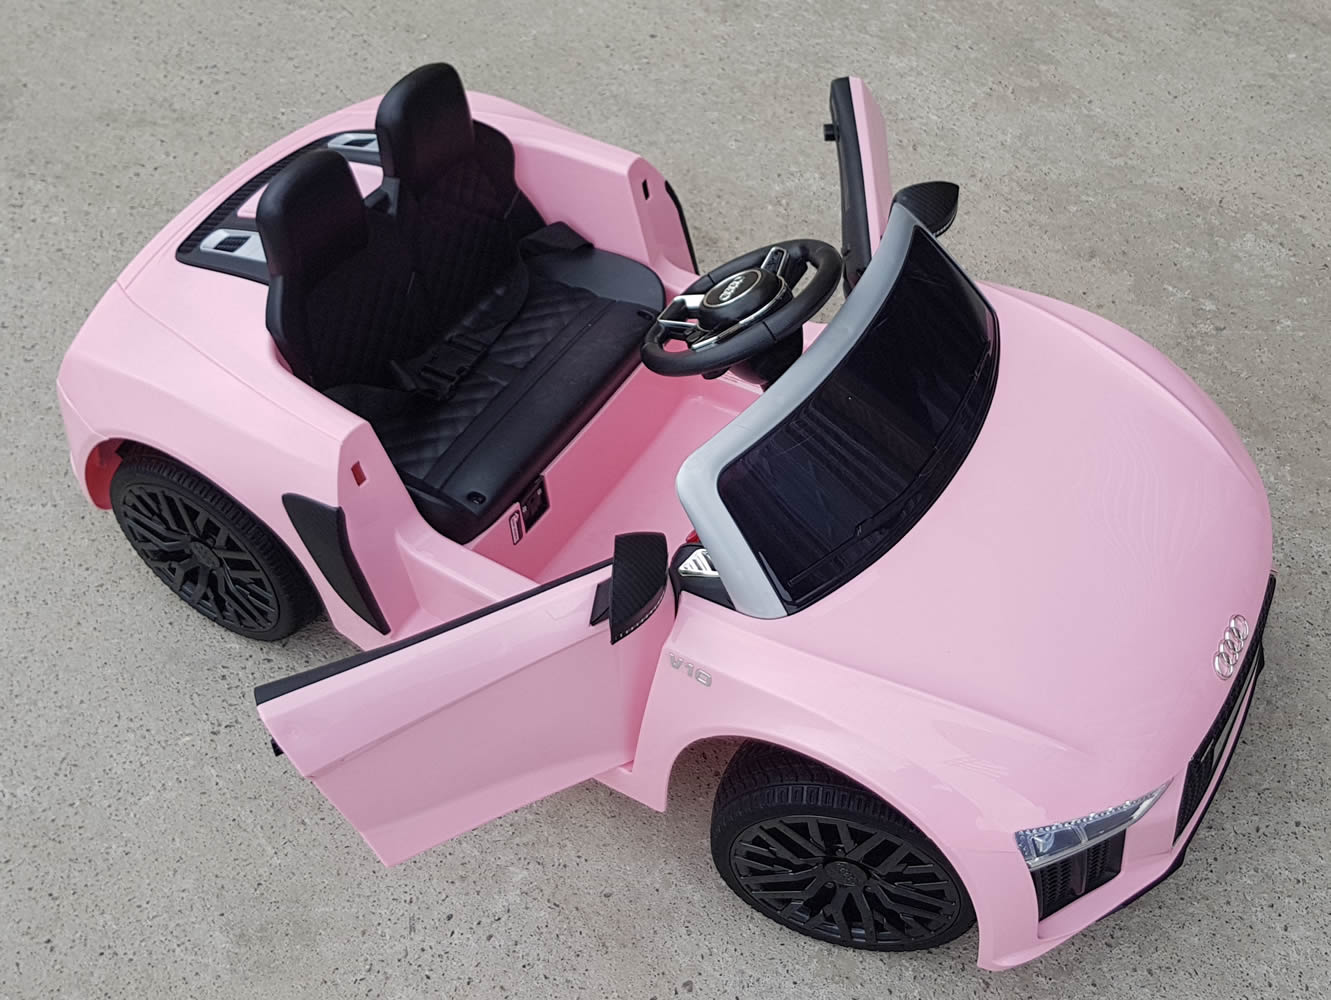 Licensed Audi R8 Spyder Compact 12v Kids Ride on Car with Remote - Pink